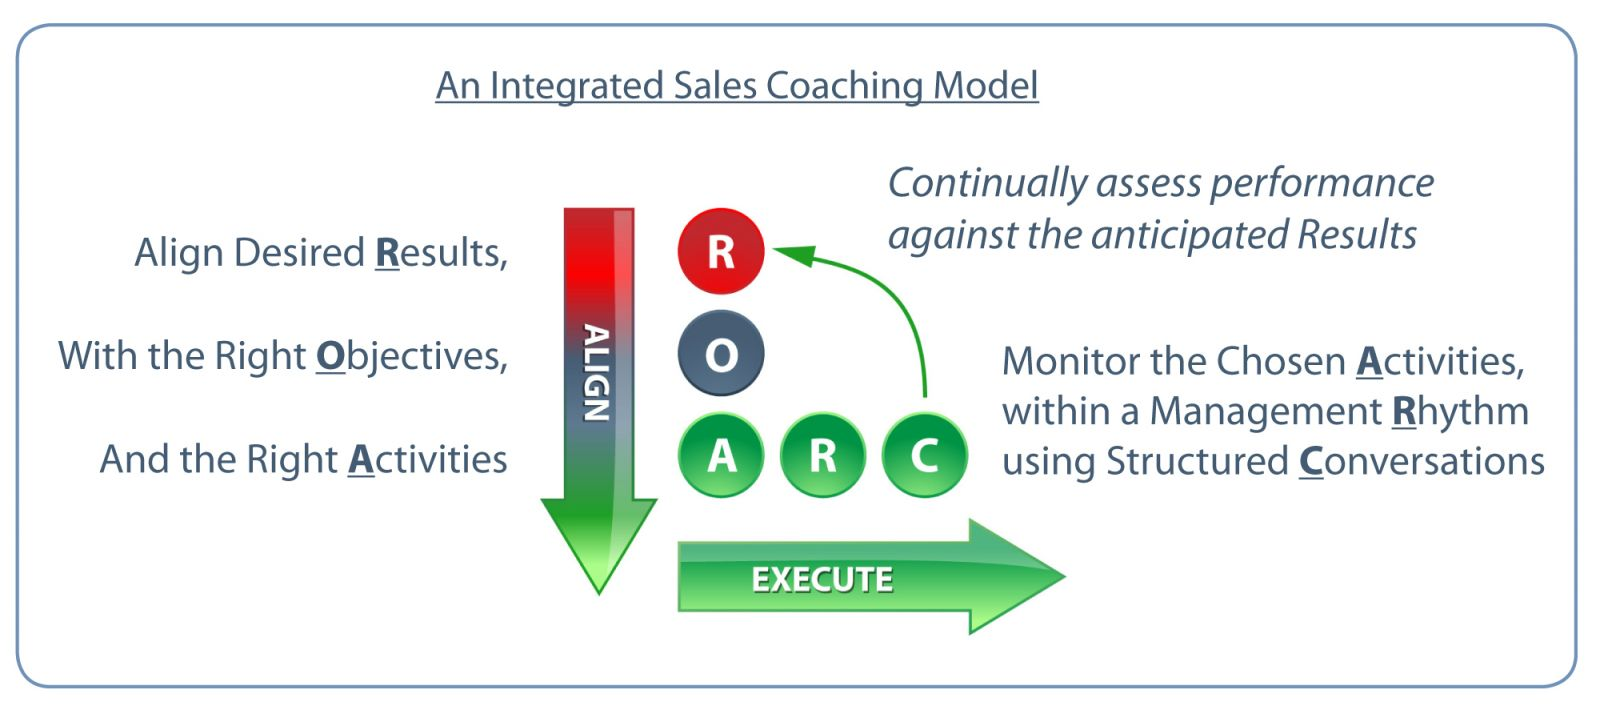 An Integrated Sales Coaching Model